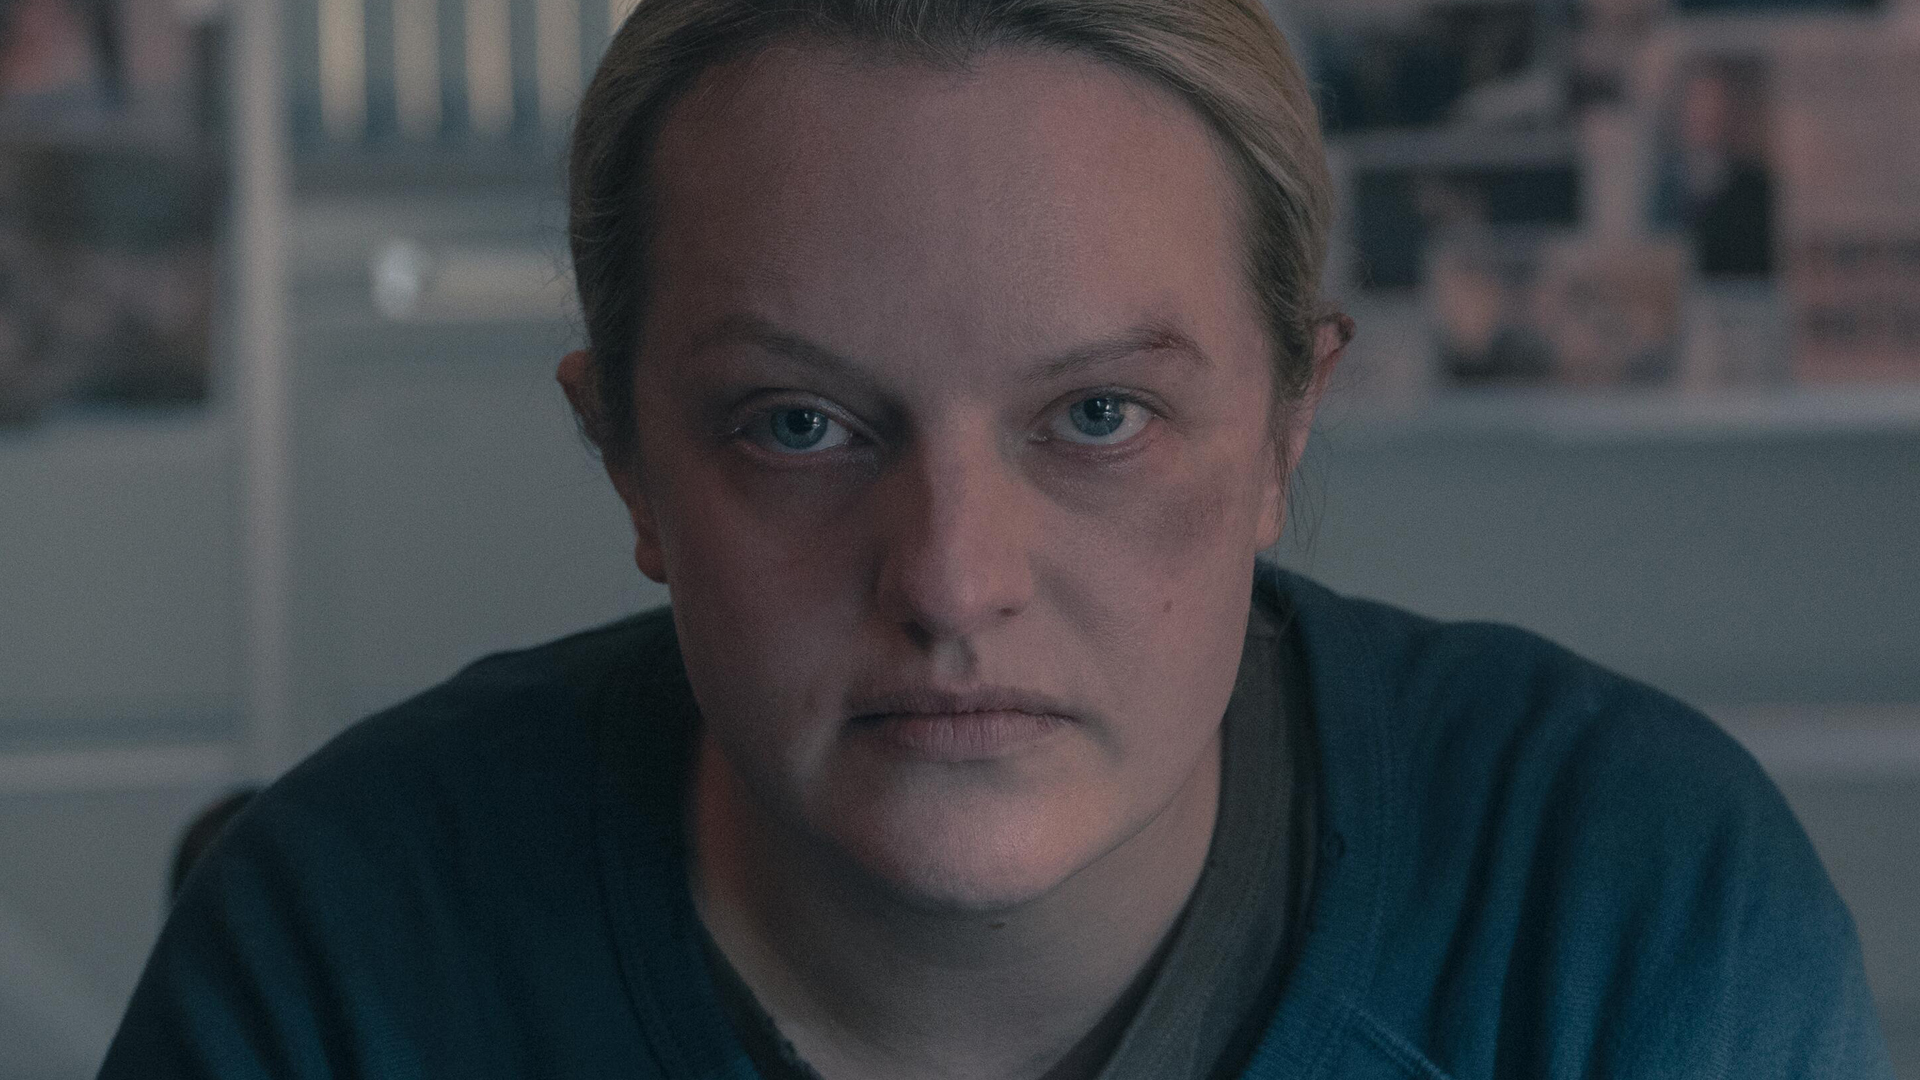 Close-up of Elisabeth Moss as June in 'The Handmaid's Tale' Season 4 Episode 7, 'Home'